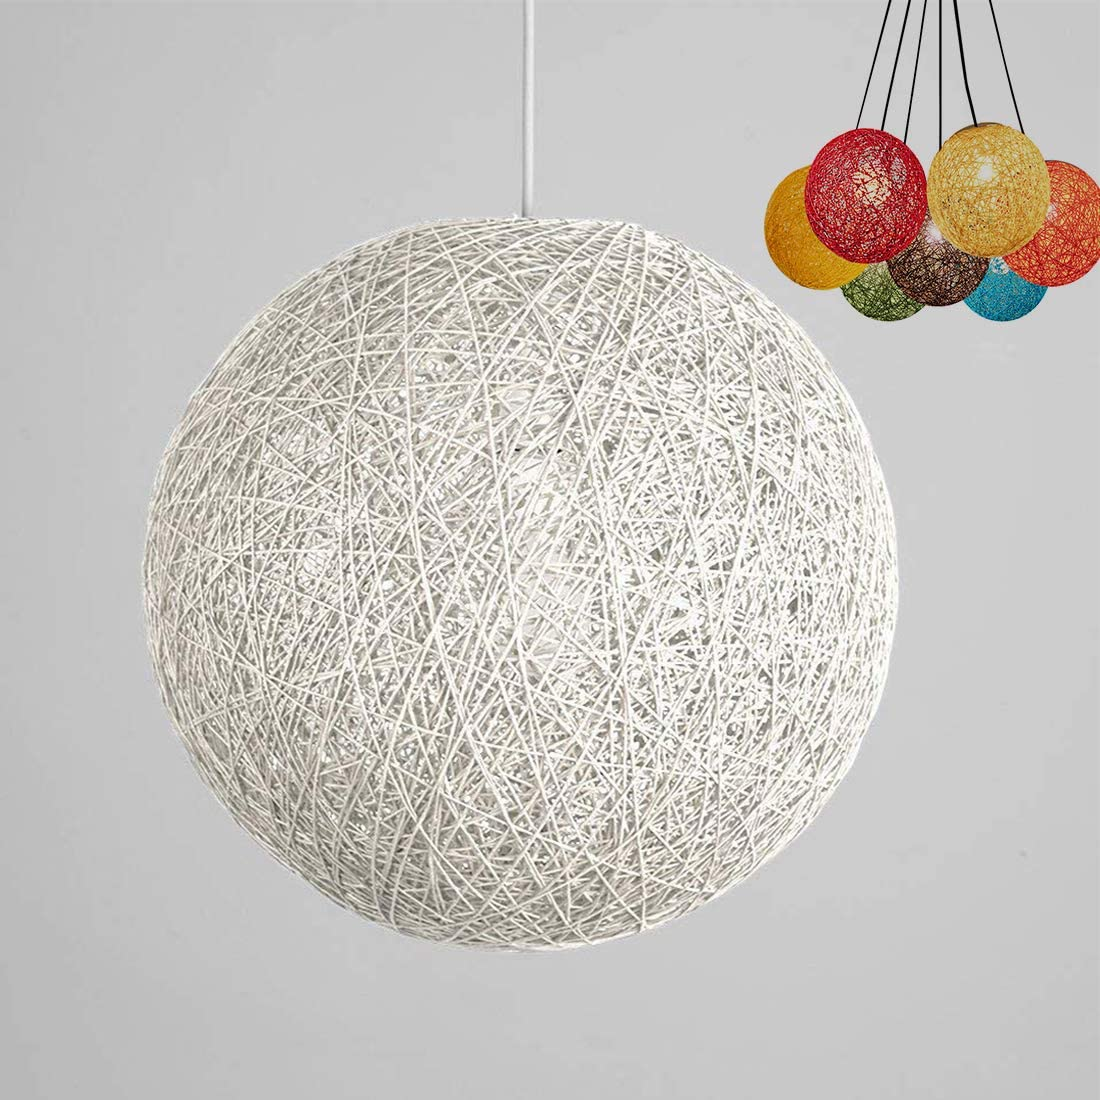 Modern Lattice Wicker Rattan Globe Ball Style Ceiling Pendant Light Lampshade Creative Personality bar, Coffee Shop, Bedroom, Restaurant Home Simple Decoration Lighting White, 30cm